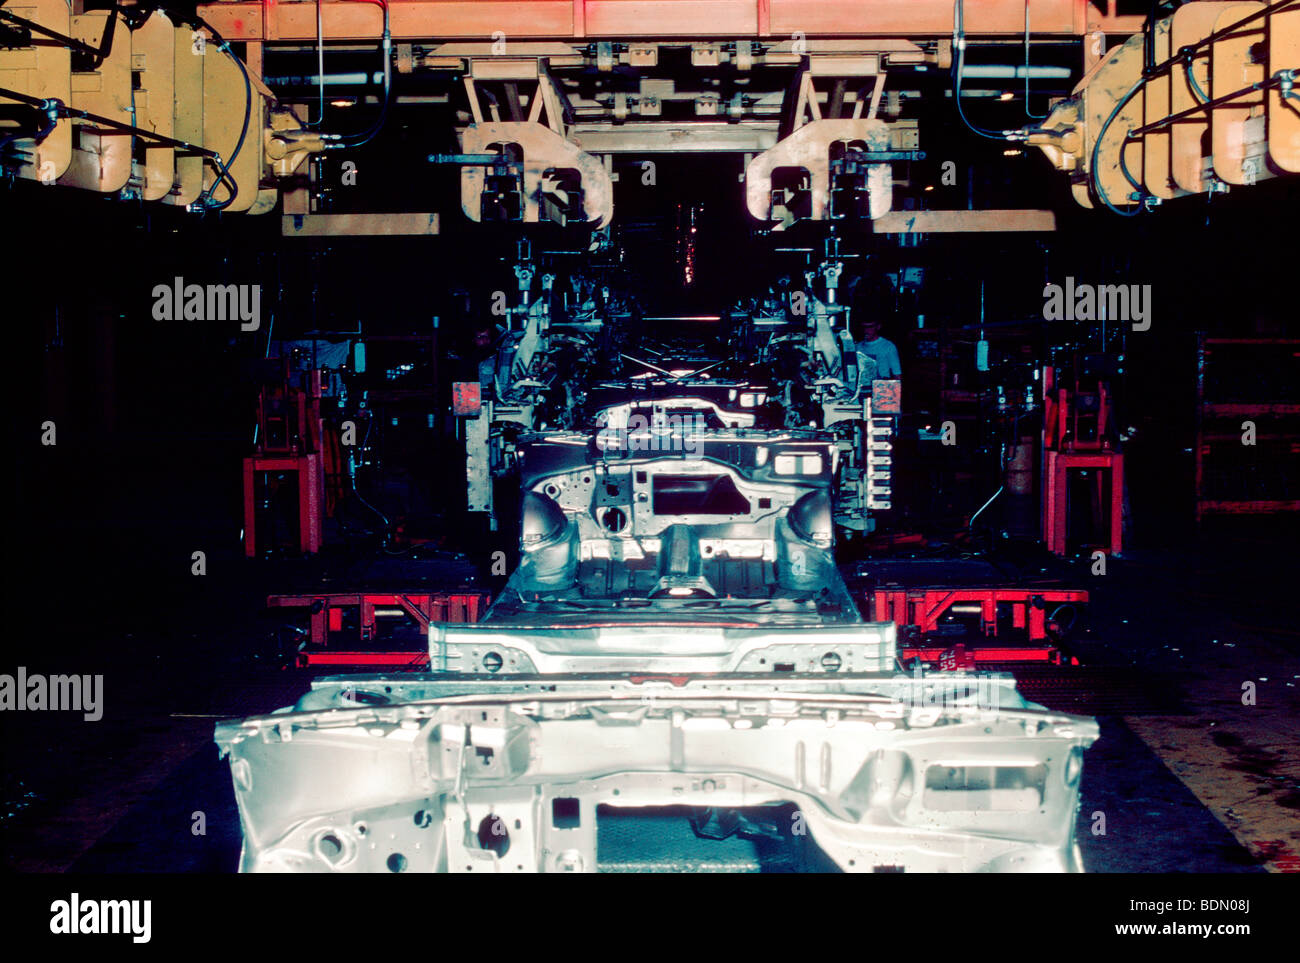 Automobile manufacturing assembley line - Stock Image